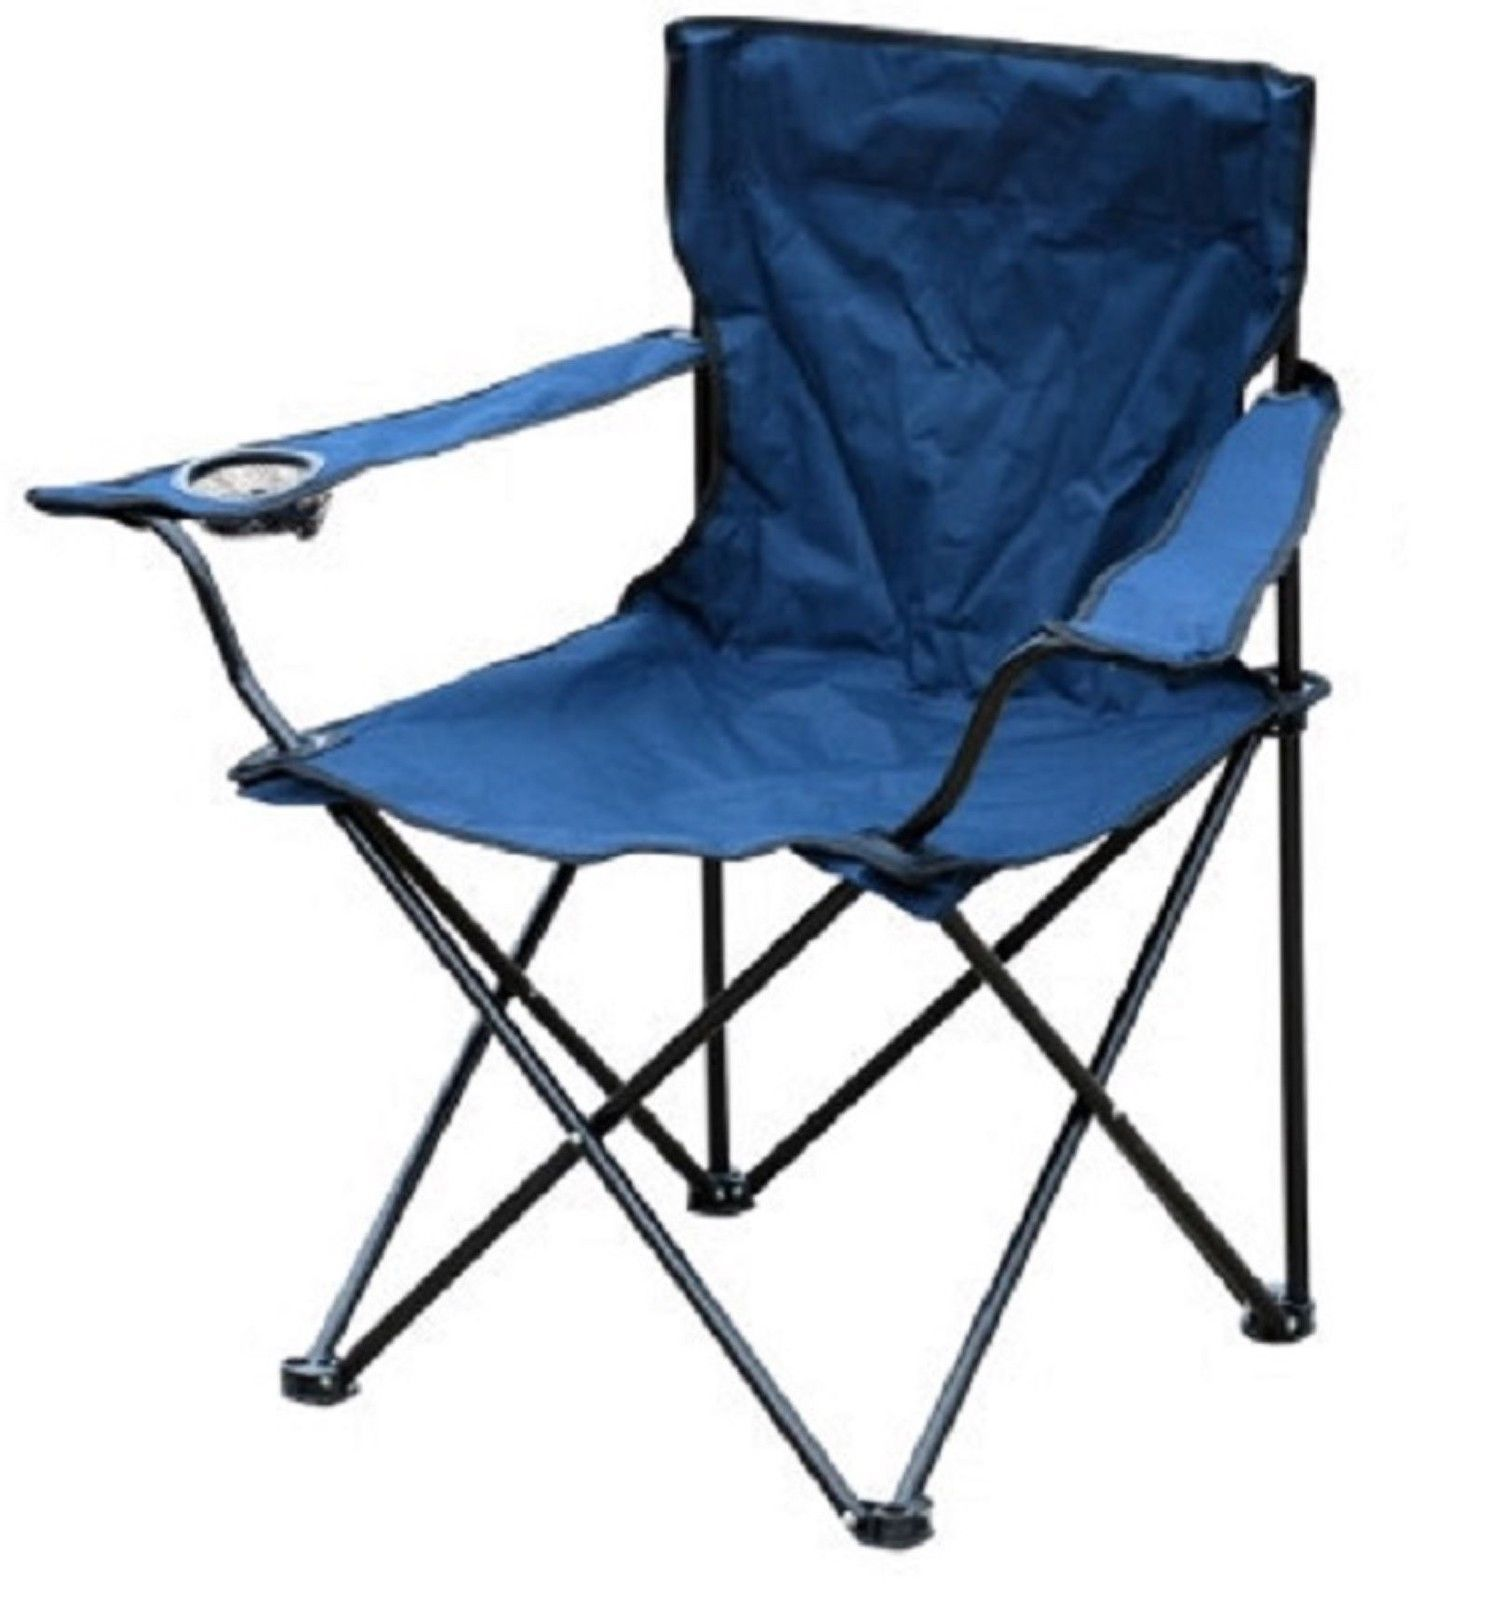 Outdoor Portable Chairs Brand New Lightweight Portable Outdoor Camping Garden